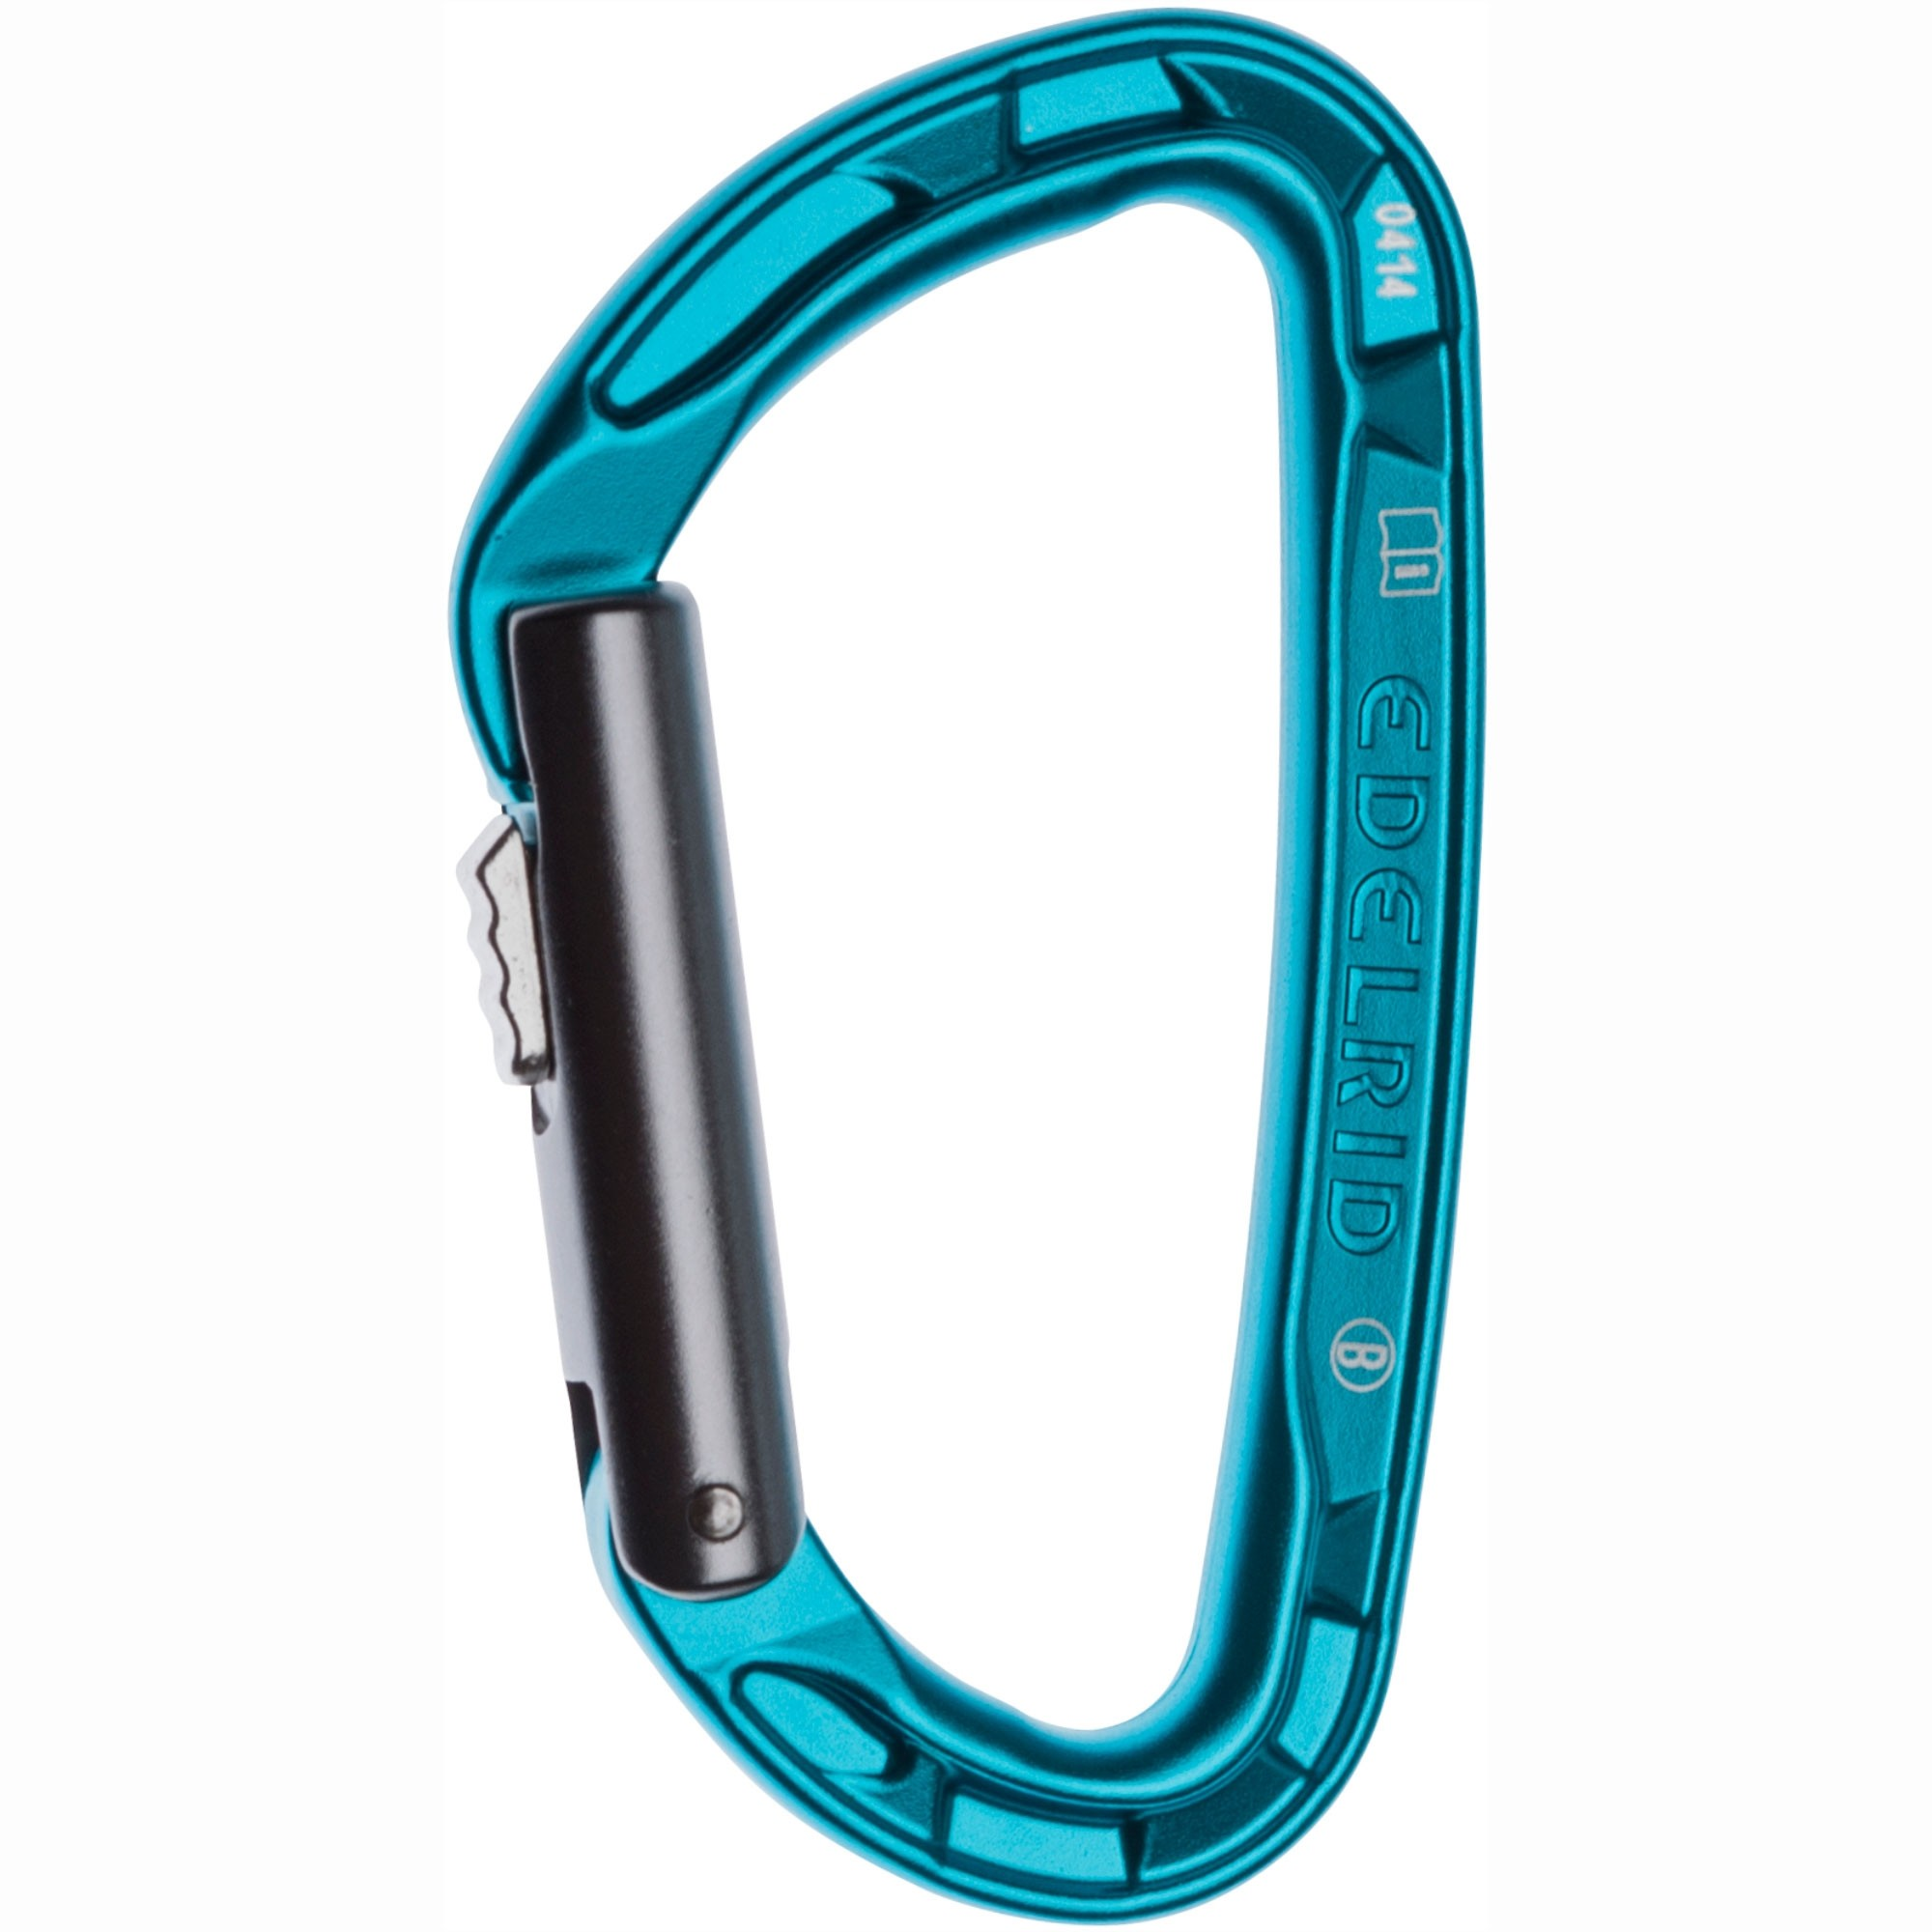 Edelrid Pure Slider - Icemint 72002-329